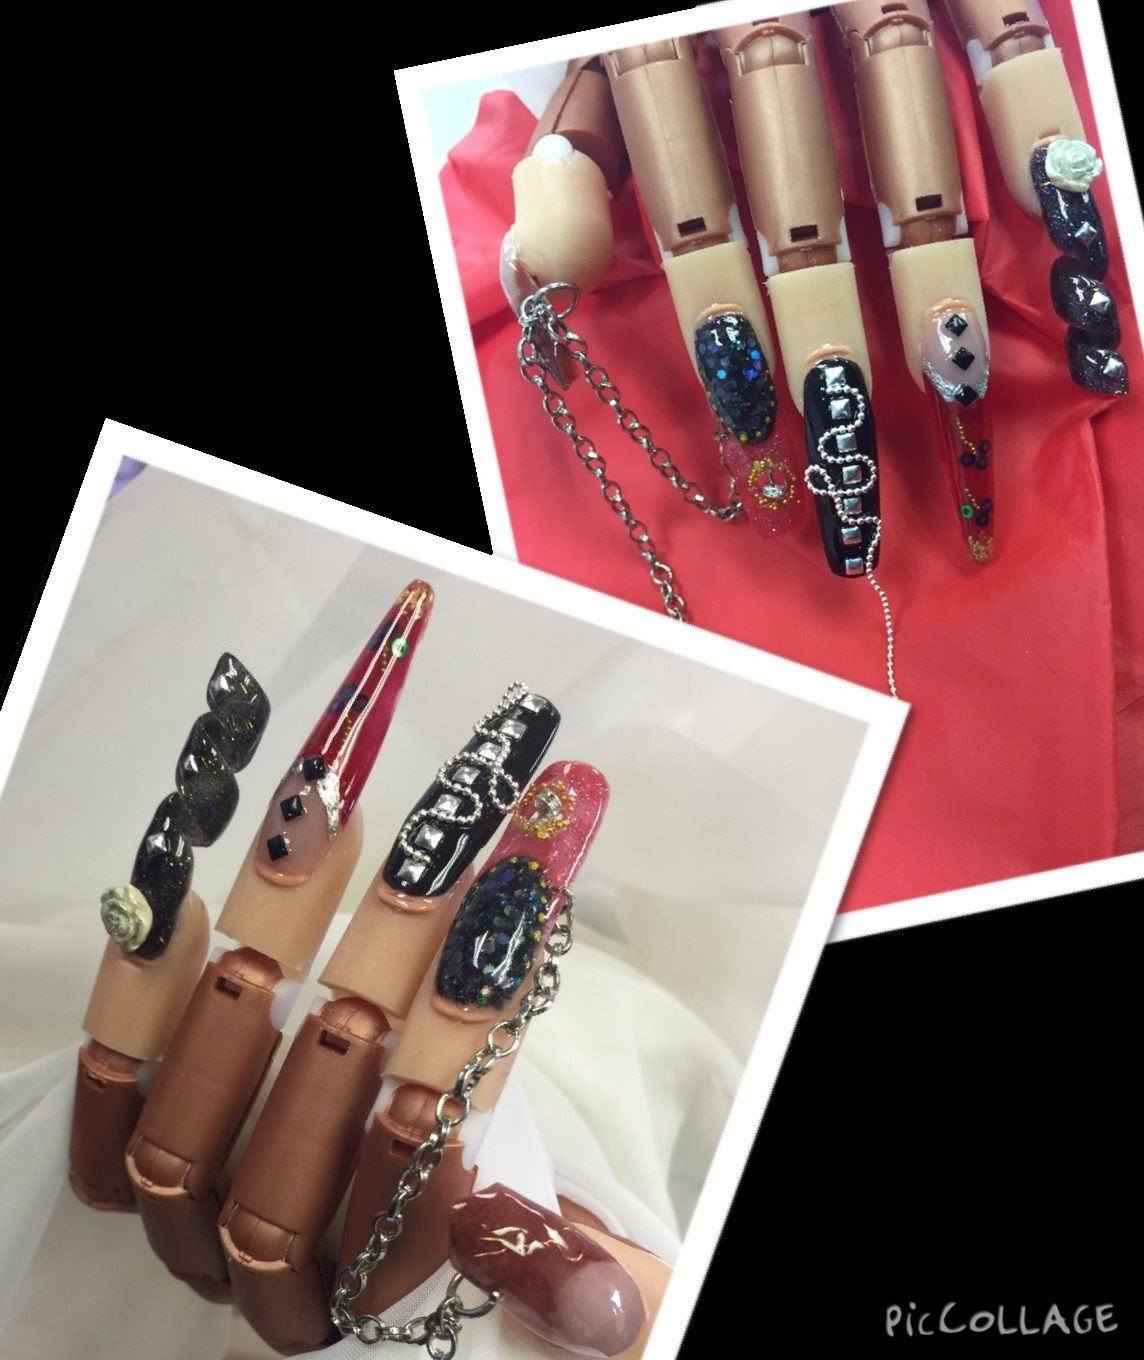 3D NAIL ART done by students at our beauty school in San